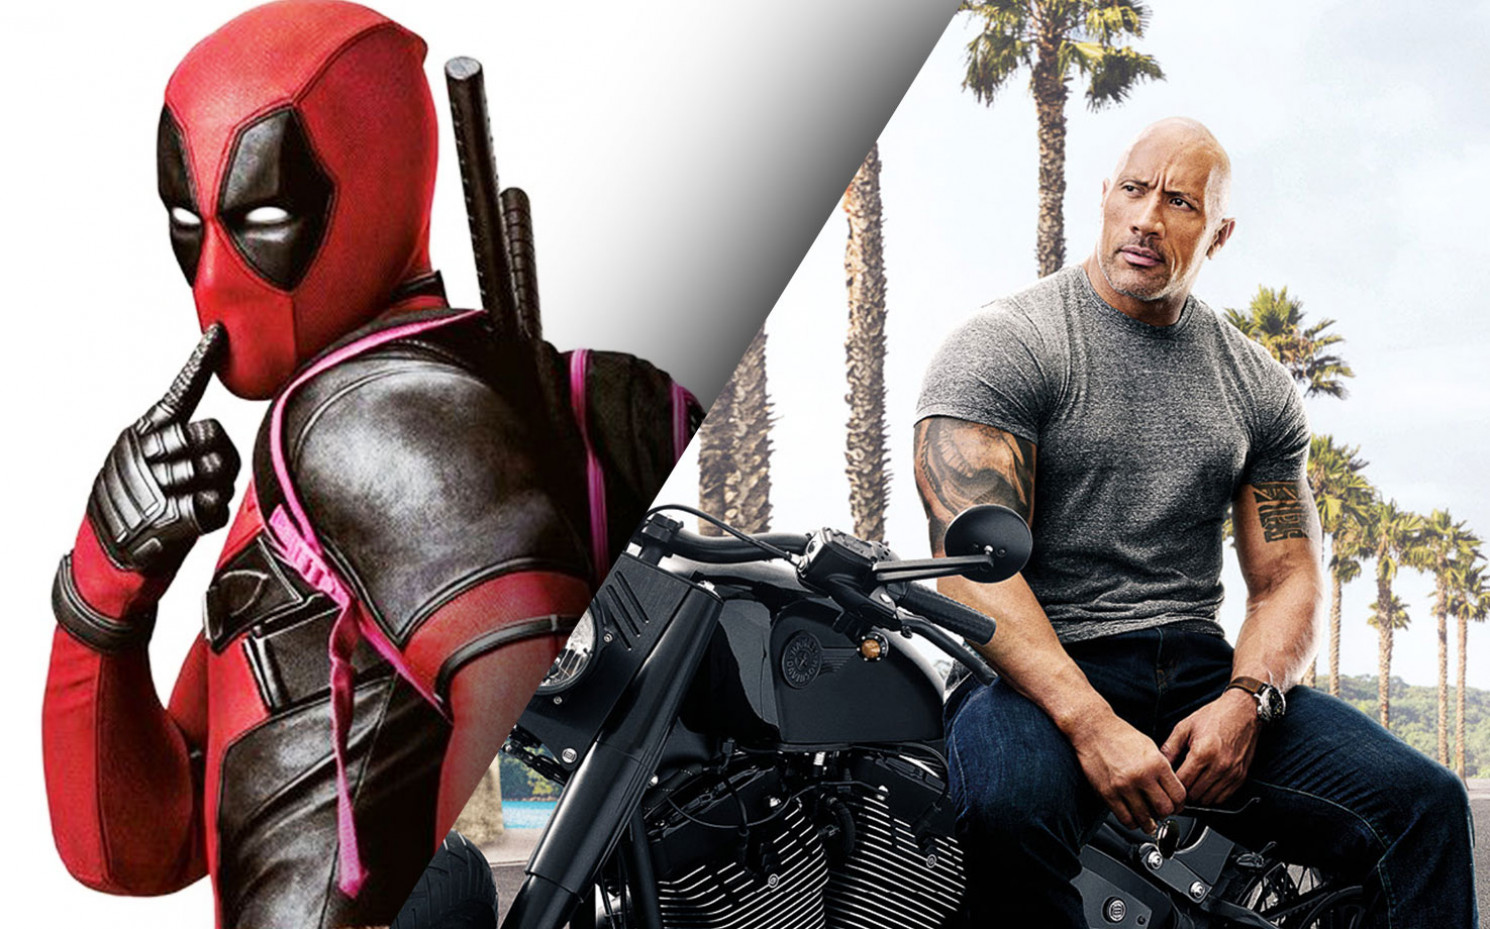 Die beste Love-Story, die Hollywood je gesehen hat? Deadpool umgarnt Dwayne Johnson. | © 20th Century Fox / Universal Pictures